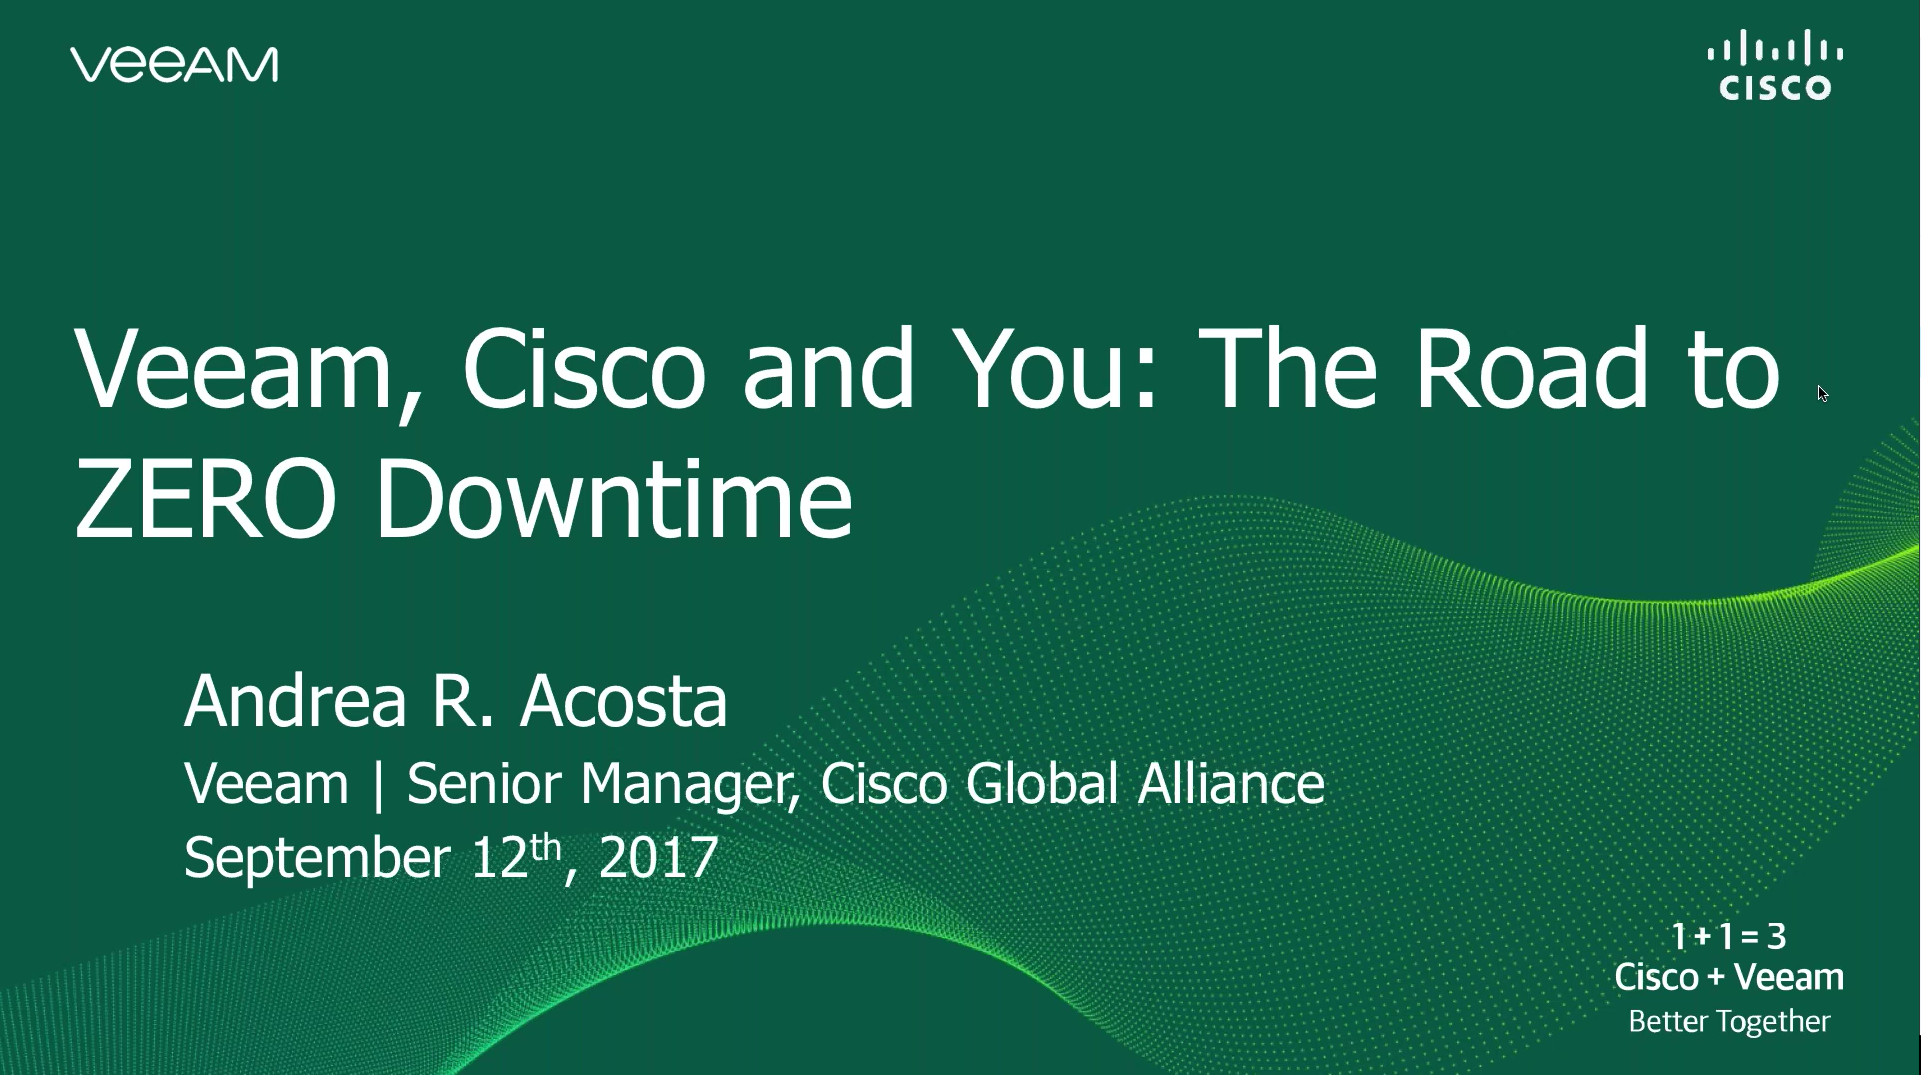 Veeam, Cisco and you: The race to zero customer downtime